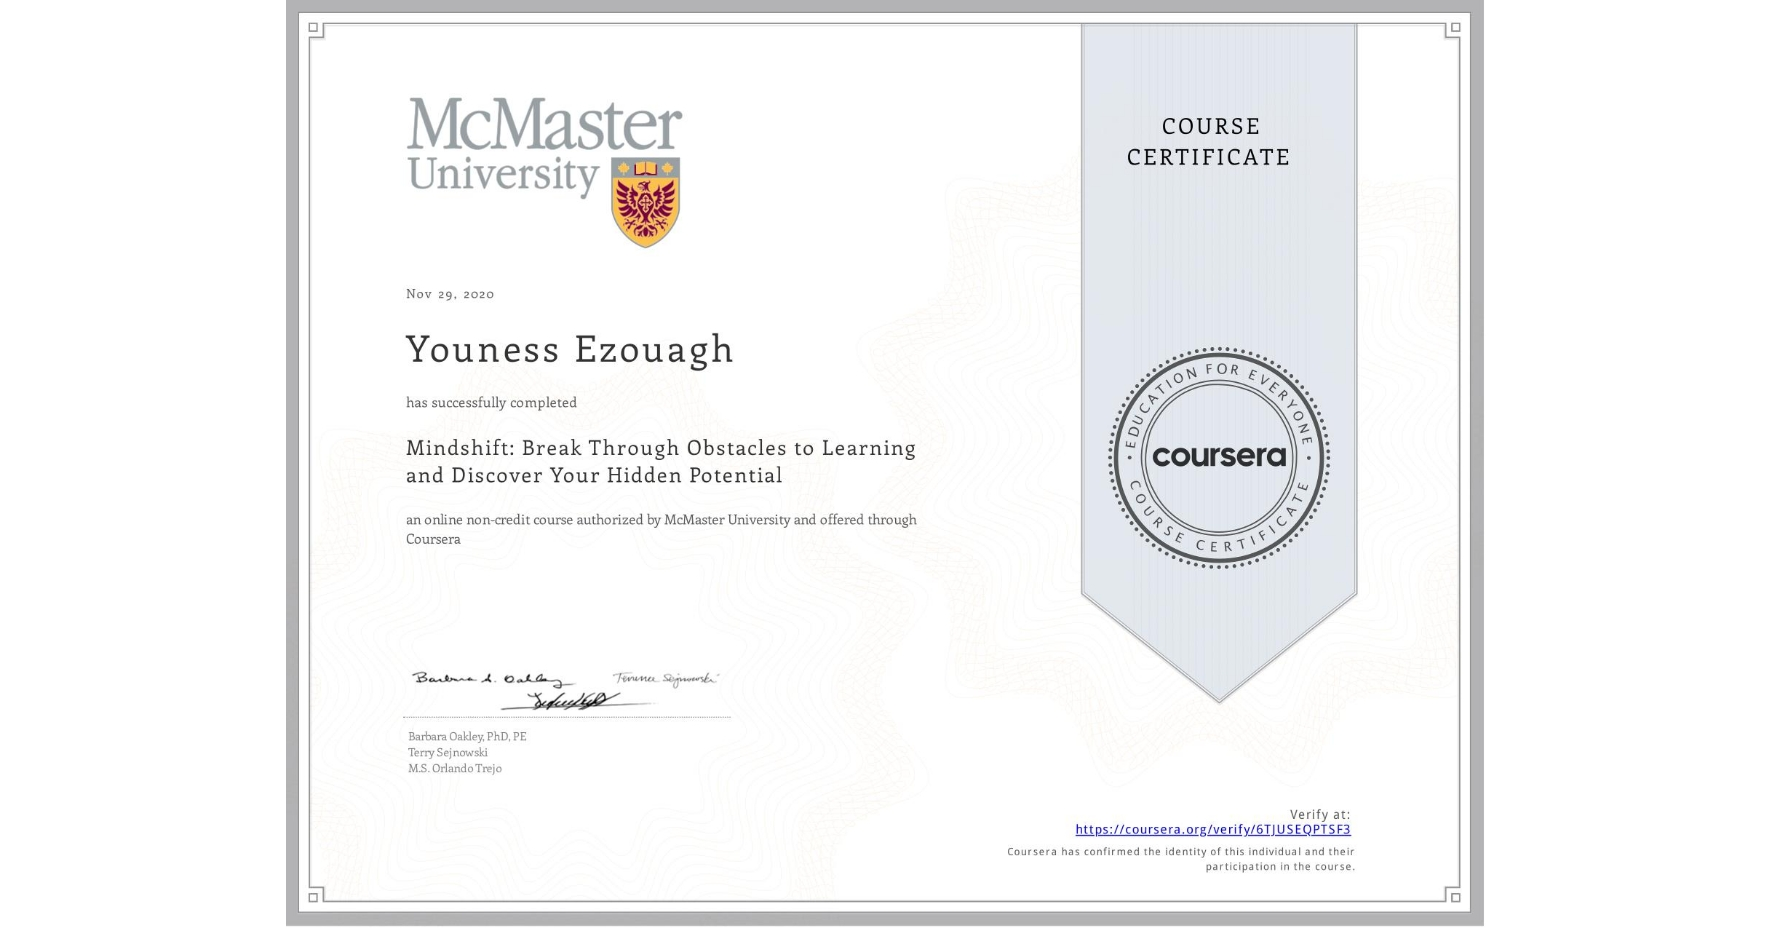 View certificate for Youness Ezouagh, Mindshift: Break Through Obstacles to Learning and Discover Your Hidden Potential, an online non-credit course authorized by McMaster University and offered through Coursera